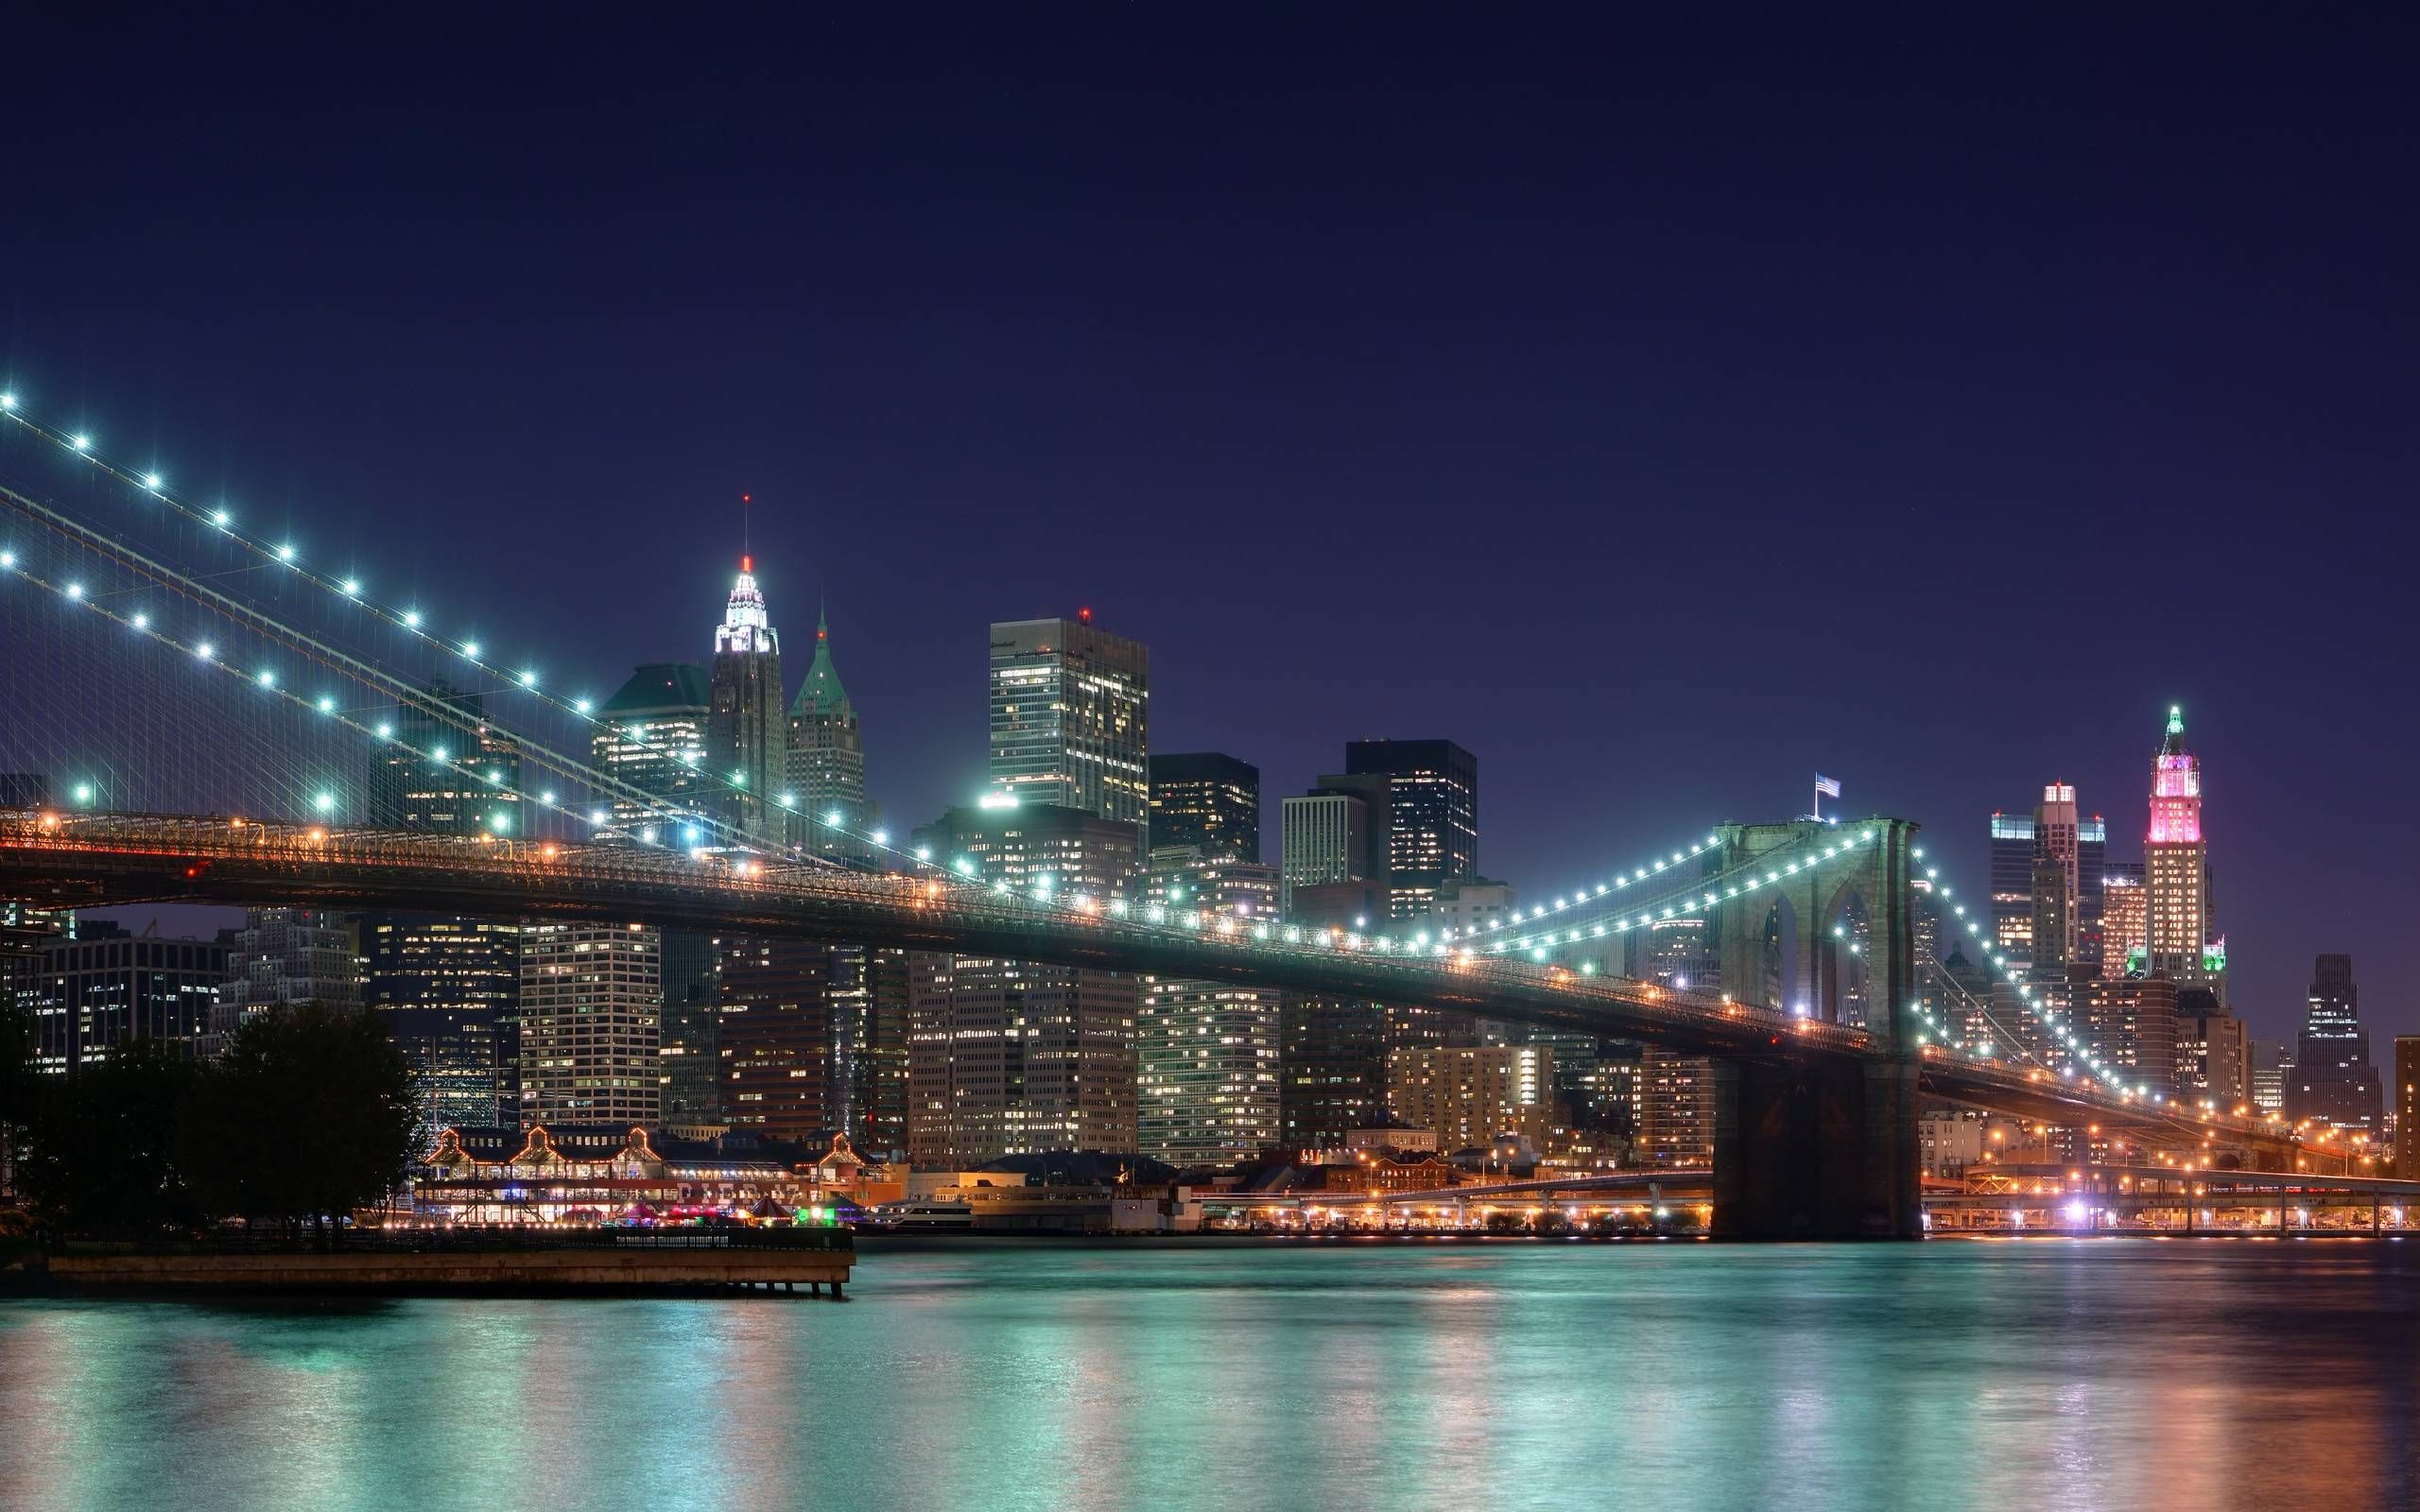 Hd Brooklyn Bridge Wallpaper